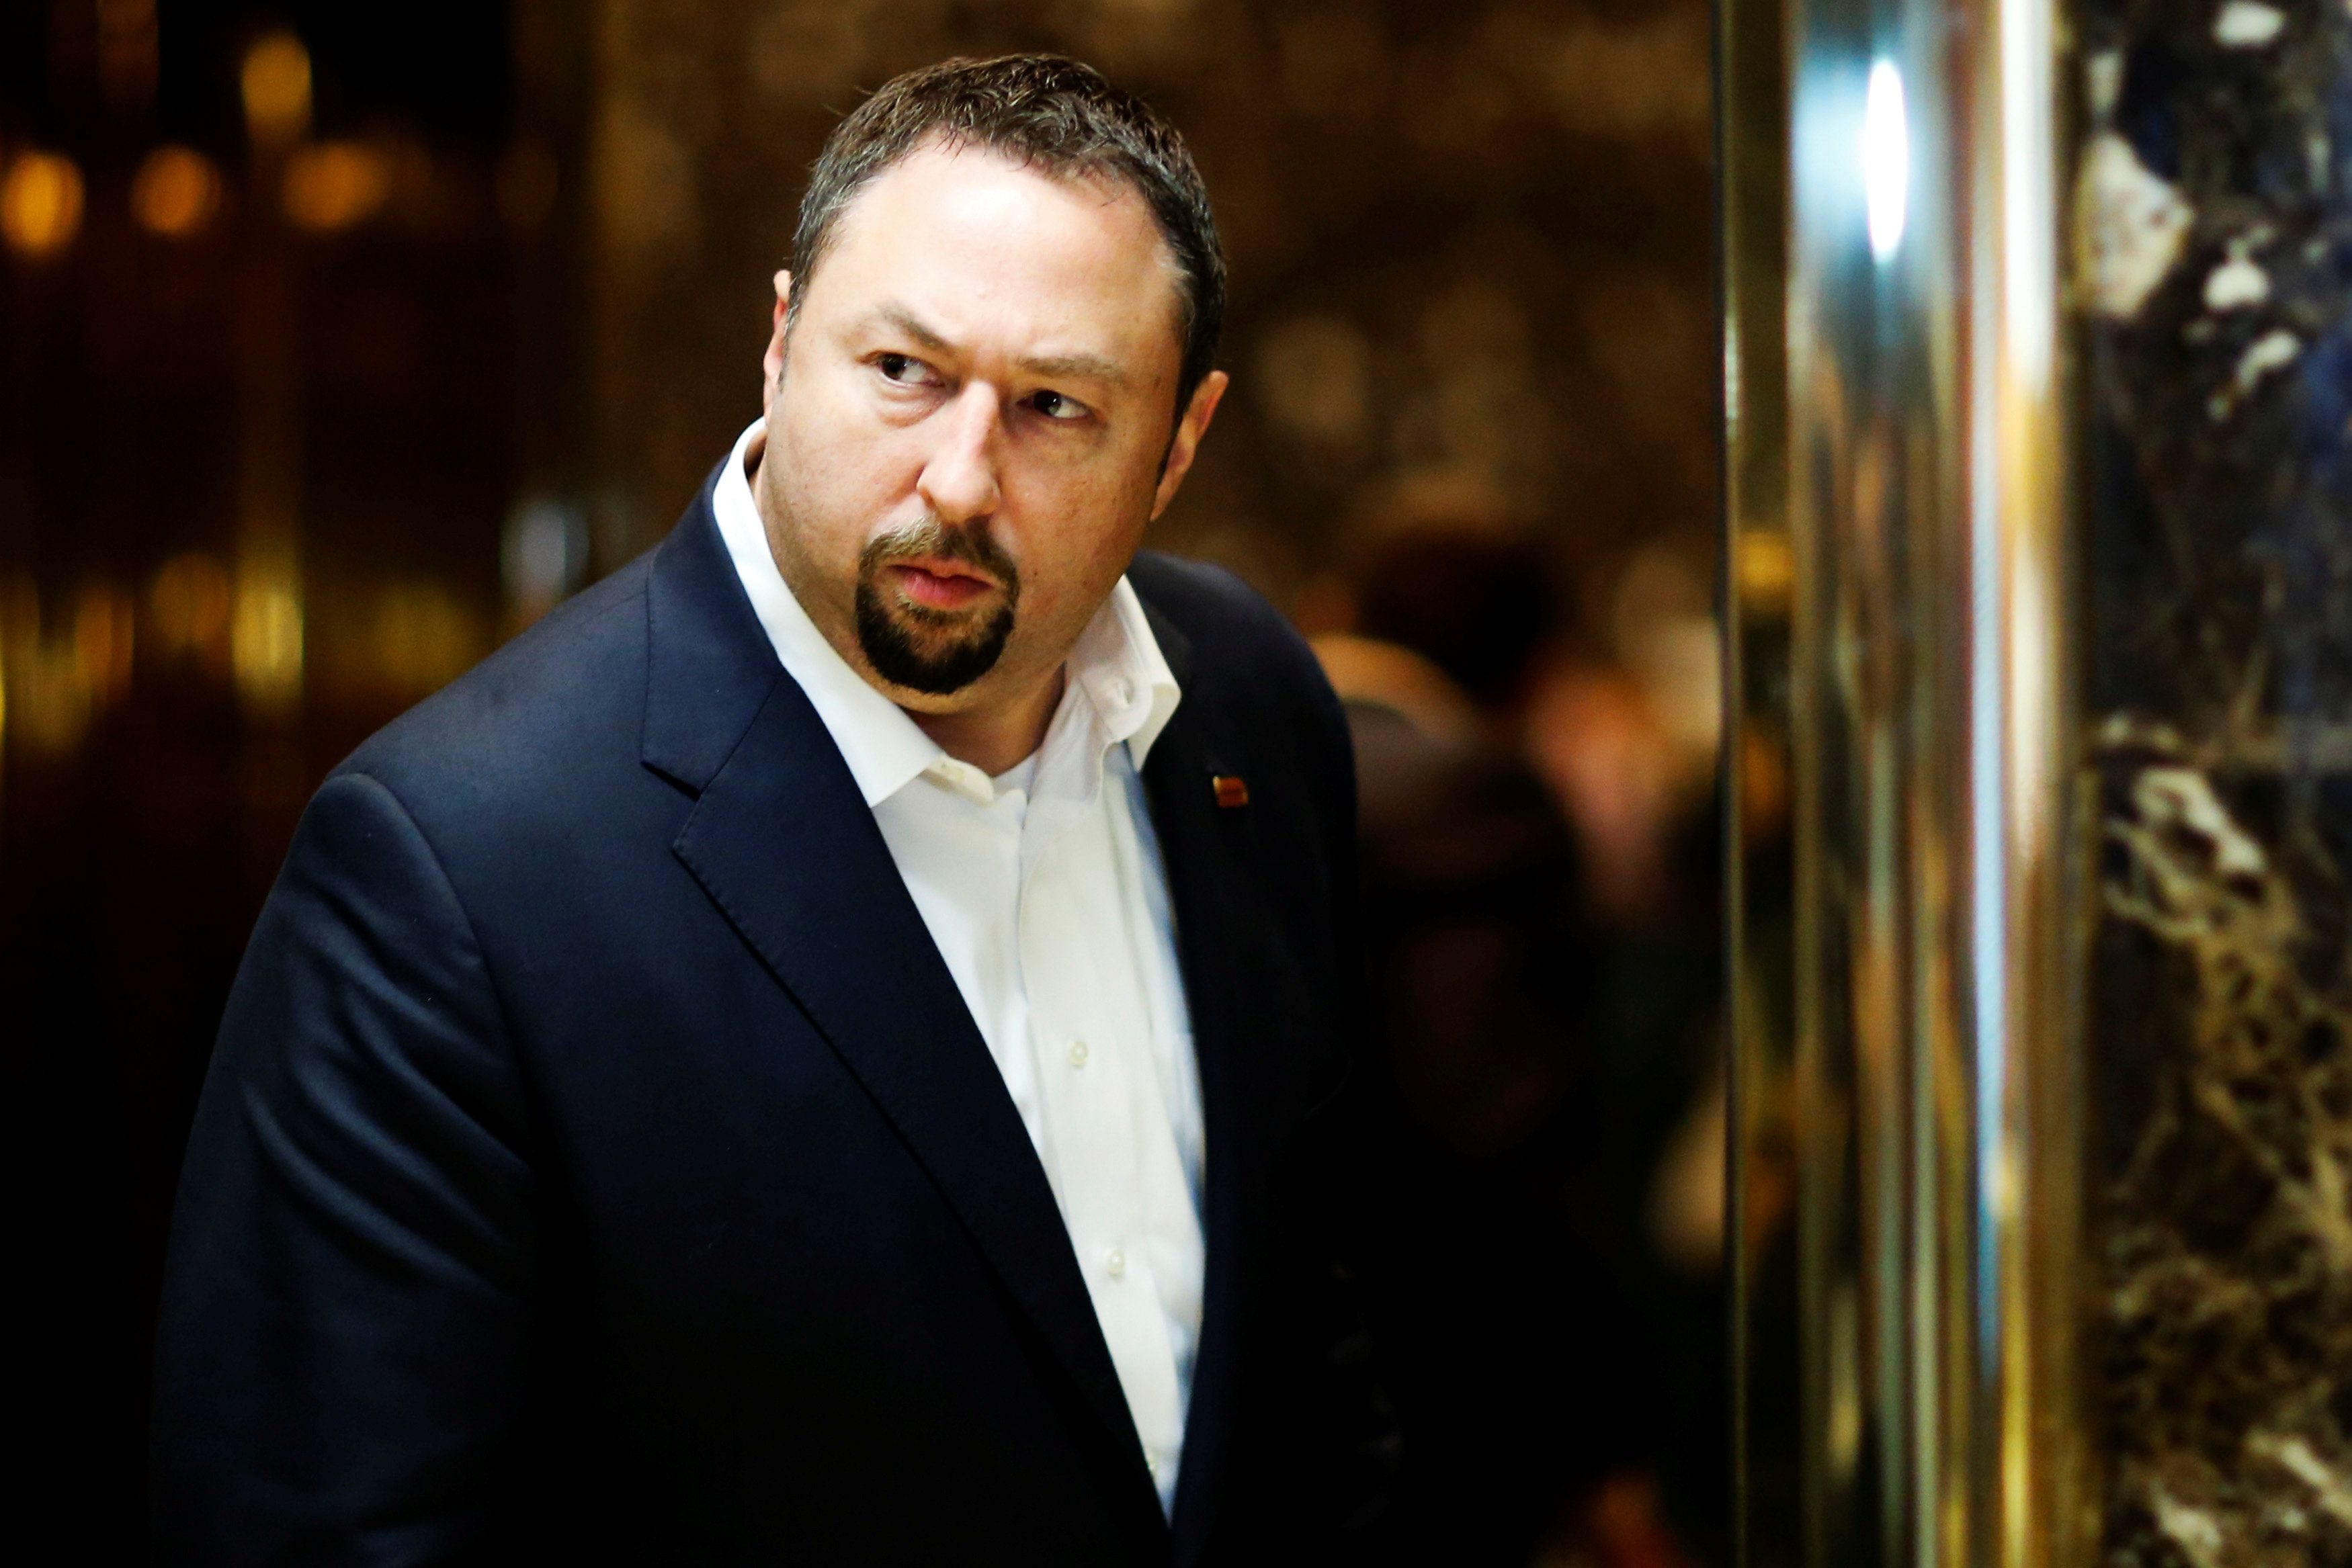 Jason Miller Steps Away from Role at CNN